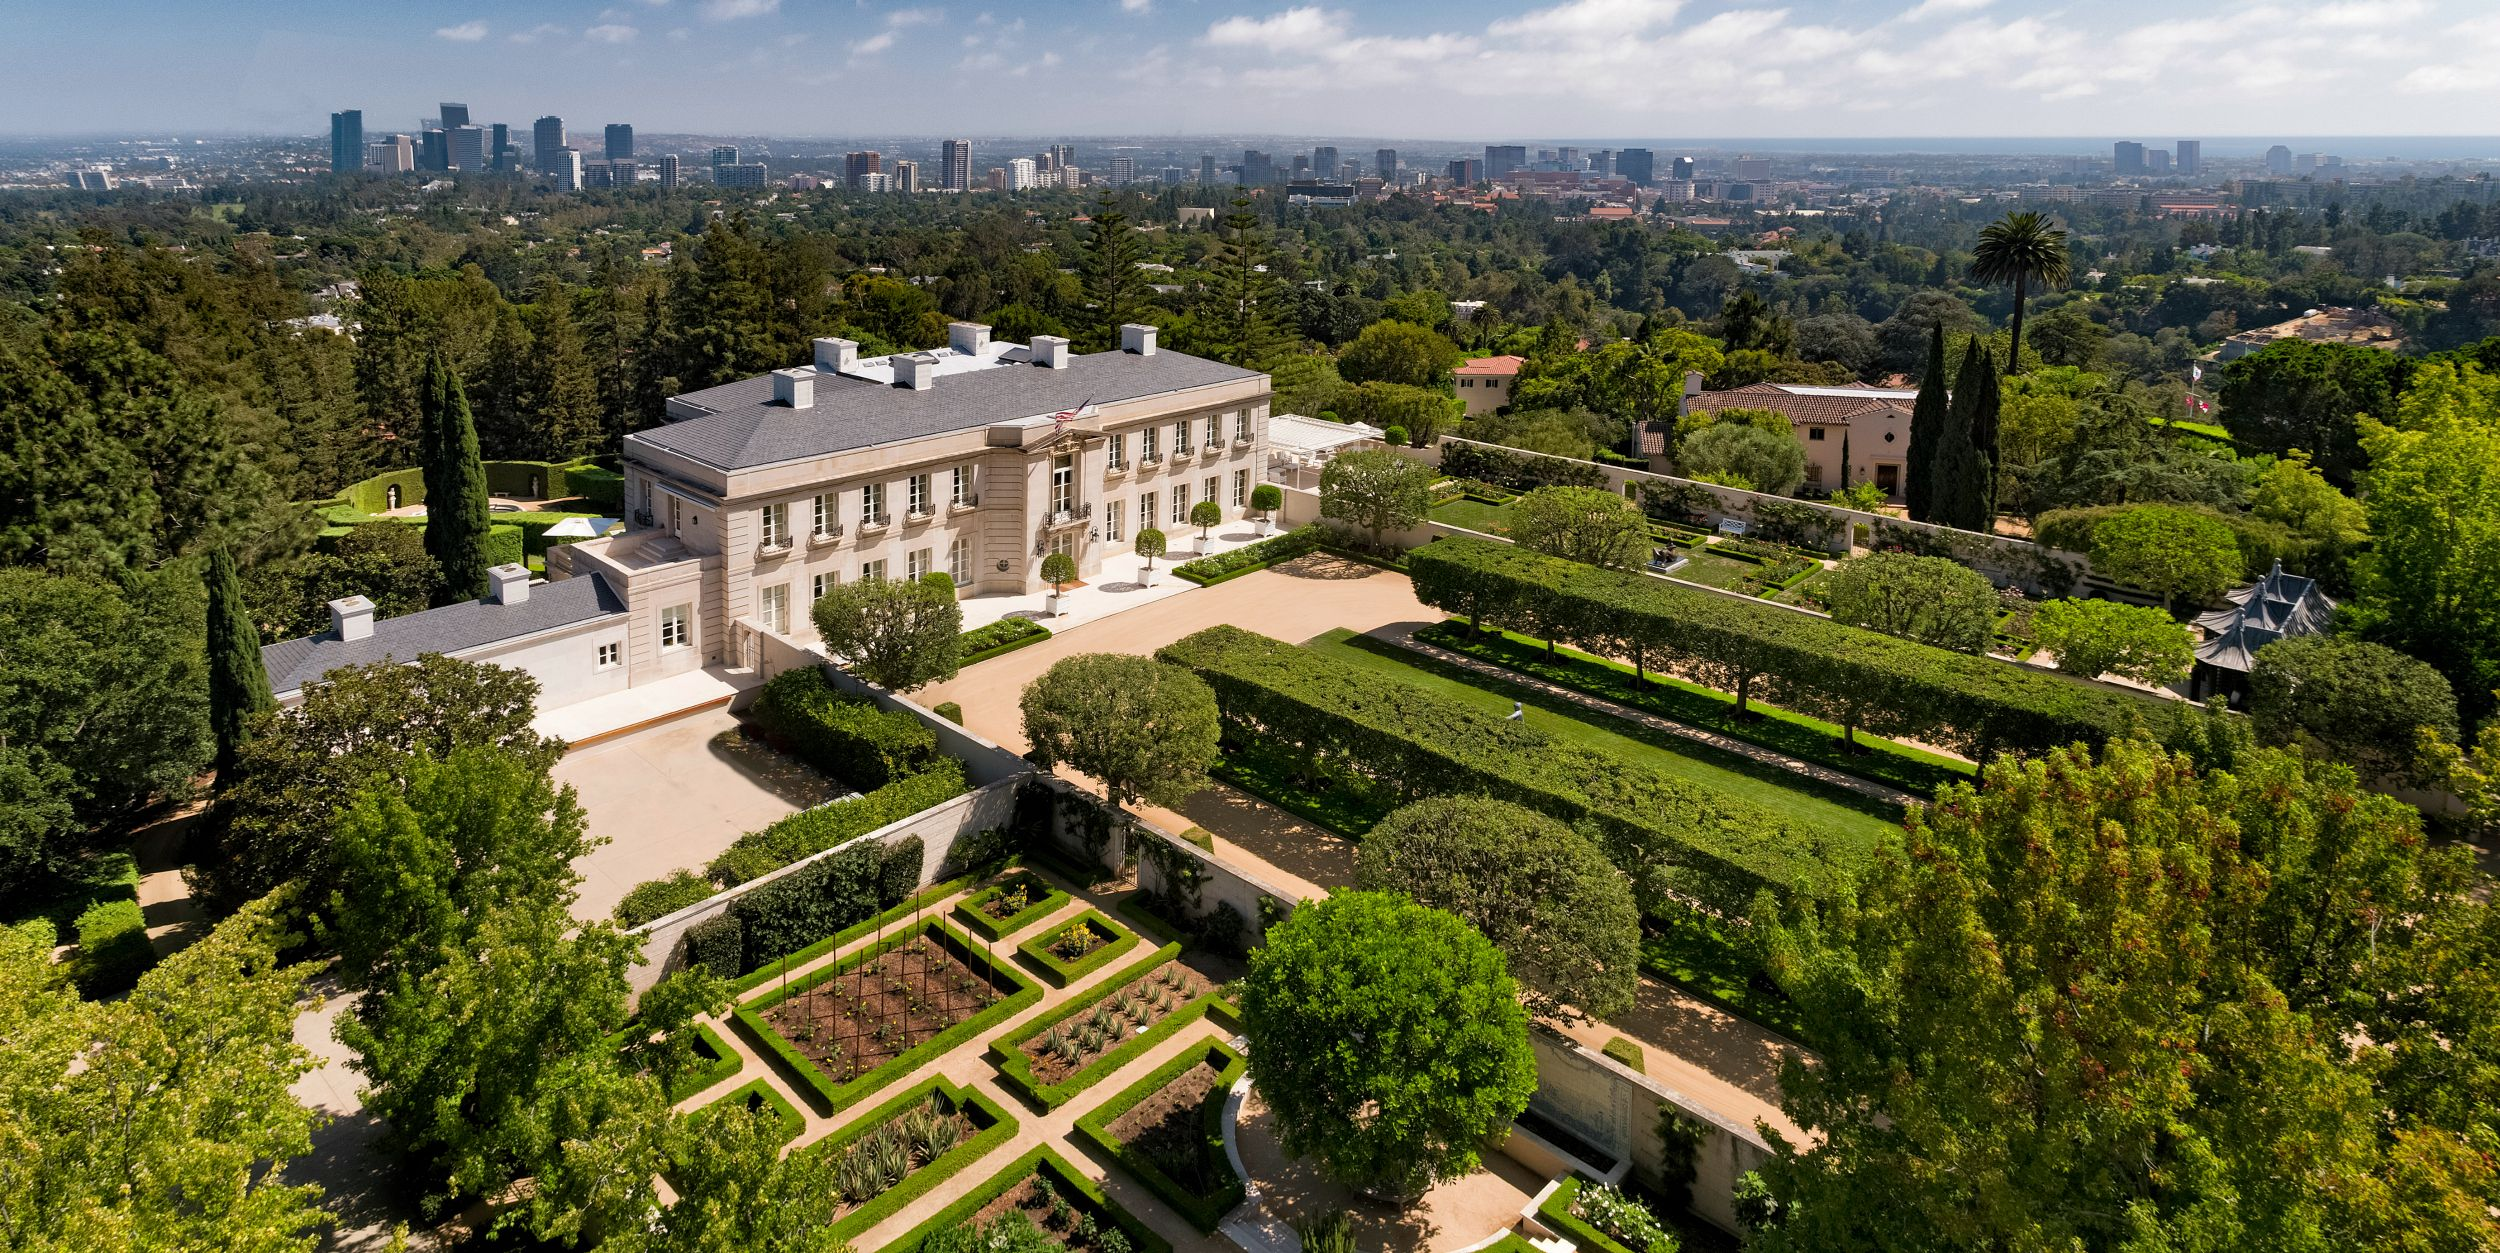 The Chartwell Estate In Bel Air Is The Most Expensive House Currently On The U.S. Open Market